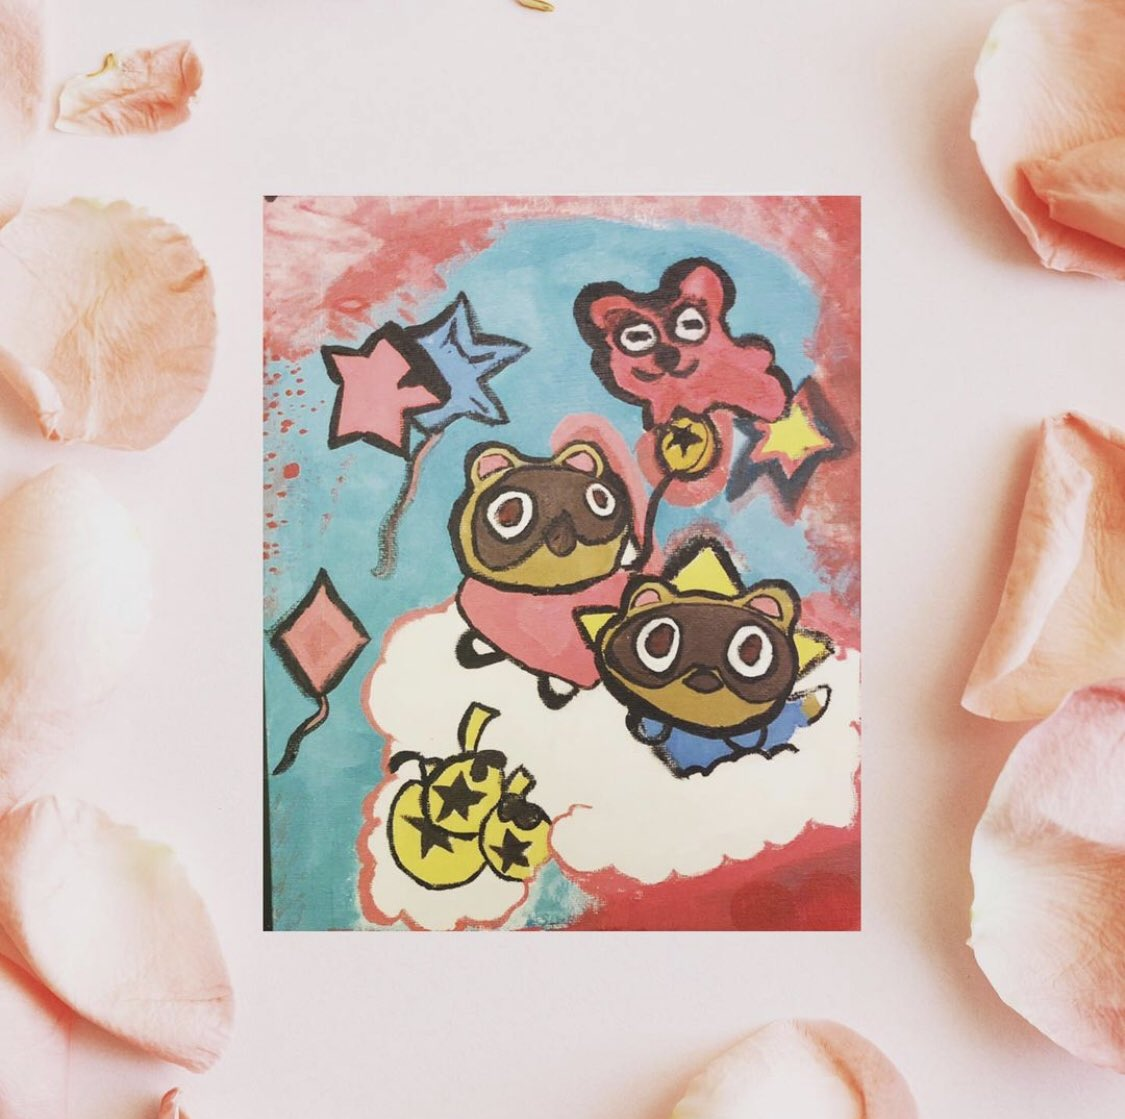 ✨💖✨HAPPY BIRTHDAY TO ME 🥳 🎂 🎉 This is my first twitch painting that I painted live on twitch 🌸🌸I still need to practice but painting is super fun! 🤩 #kawaiiprincess #nooklings #acnhcommunity #acnhdesigns #sanriocore #nintendoswitchlite #thursdaymood #acrylicpainting 💖🌸